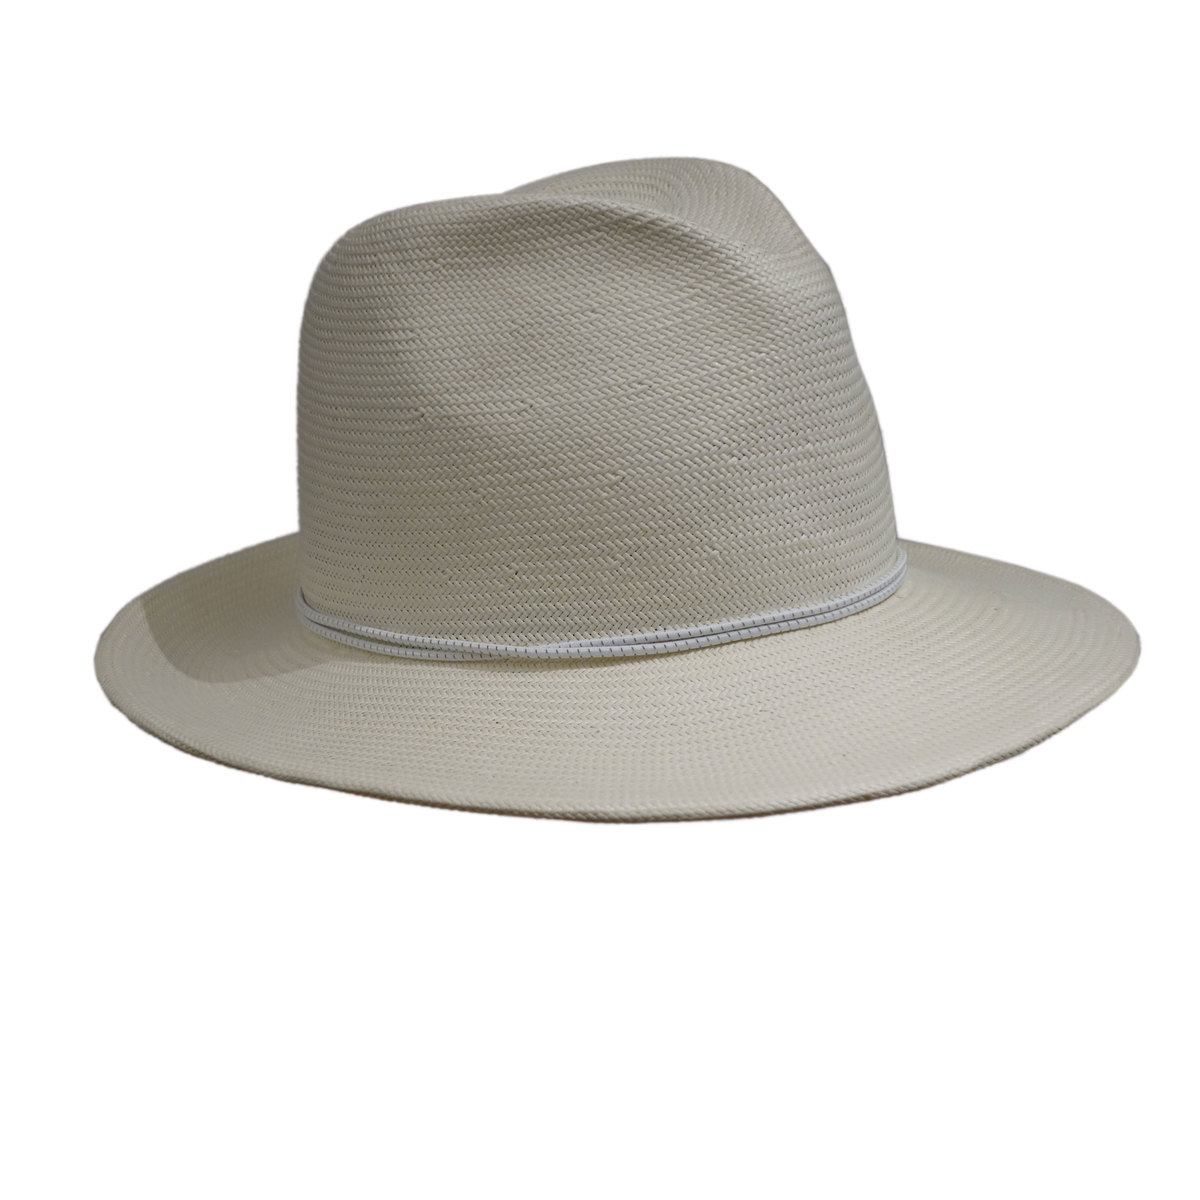 03b4d0c2c4c6f Yestadt Millinery NOMAD PACKABLE FEDORA IVORY